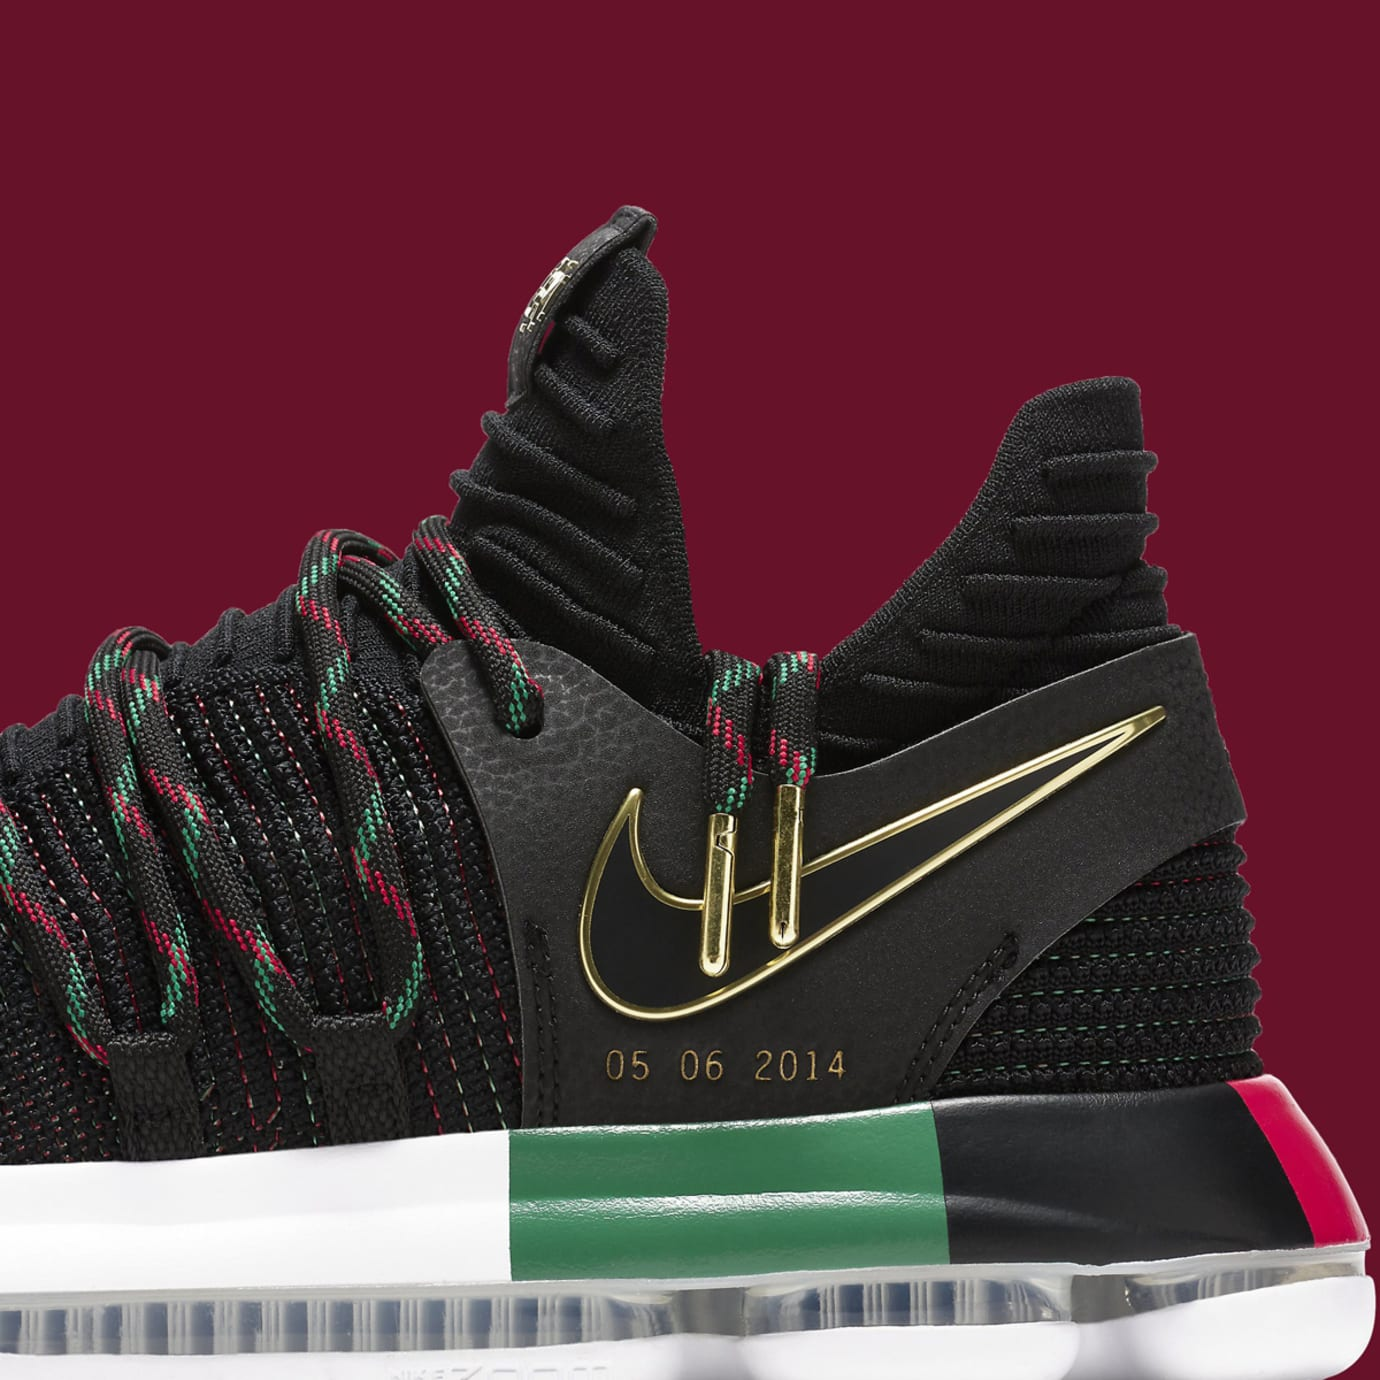 best cheap f9c82 45e1f Nike LeBron KD Kyrie Black History Month Sneakers 2018 ...